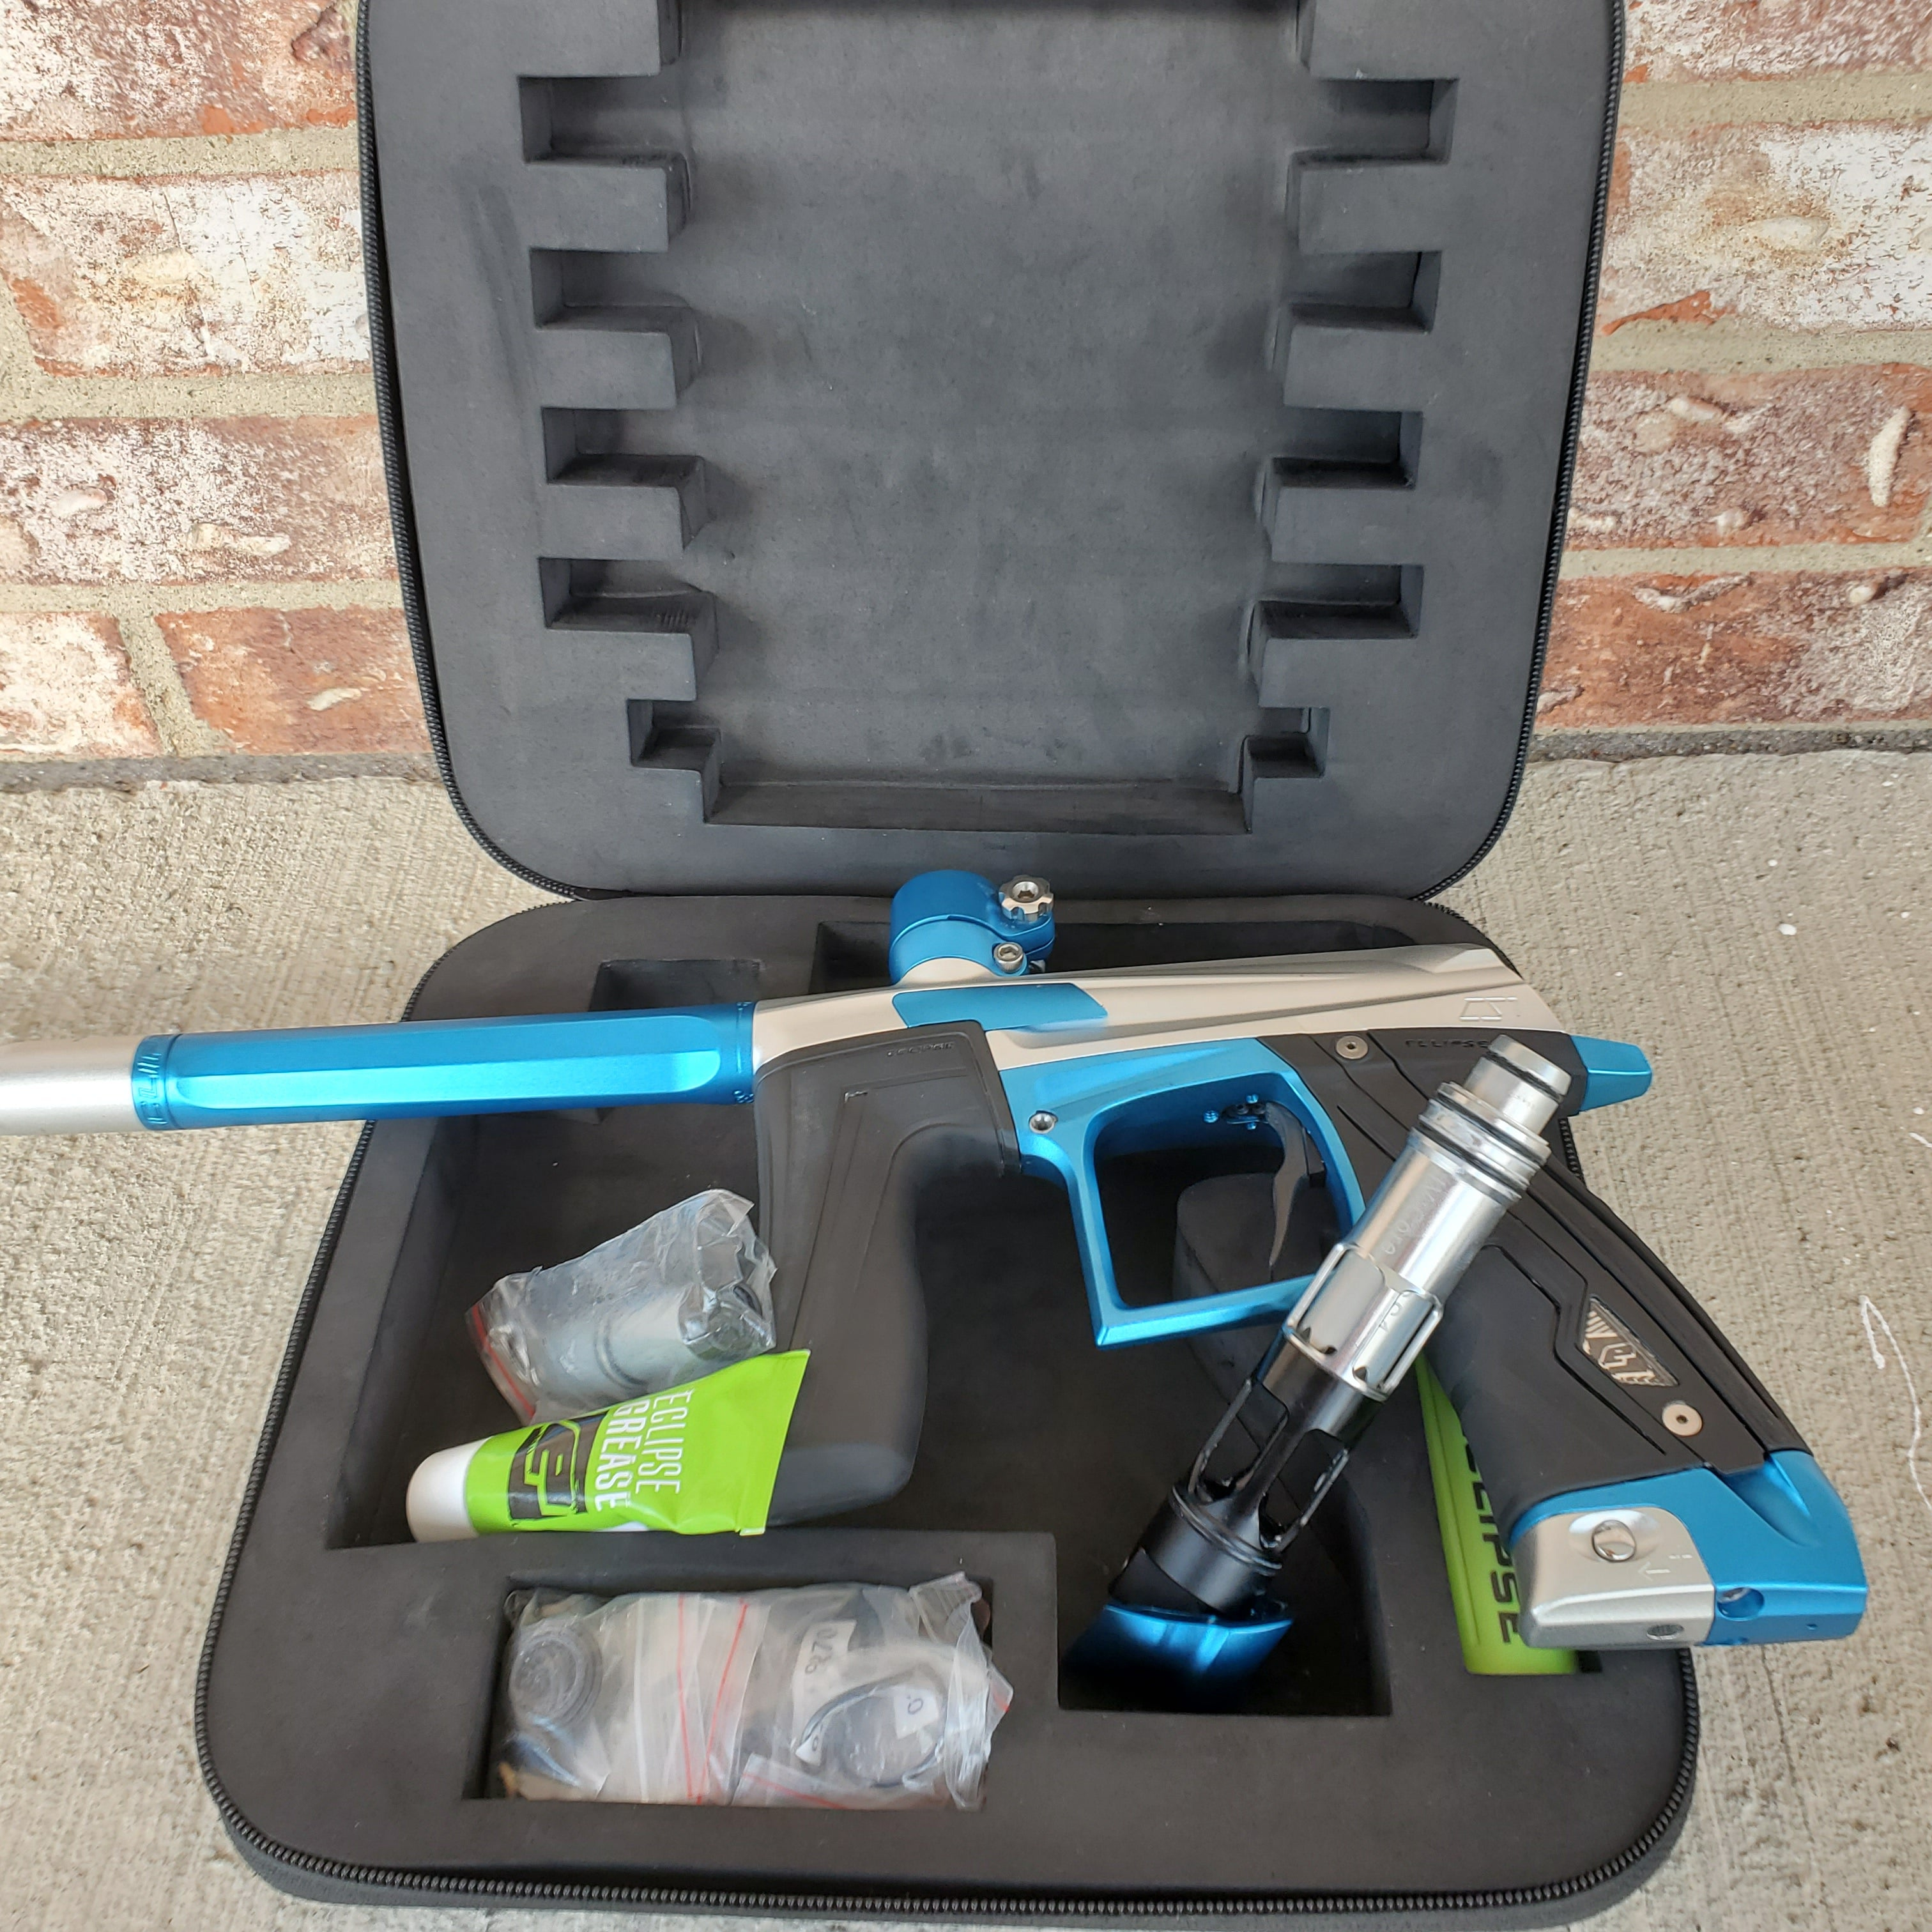 Used Planet Eclipse Cs1 Paintball Gun - Silver / Blue